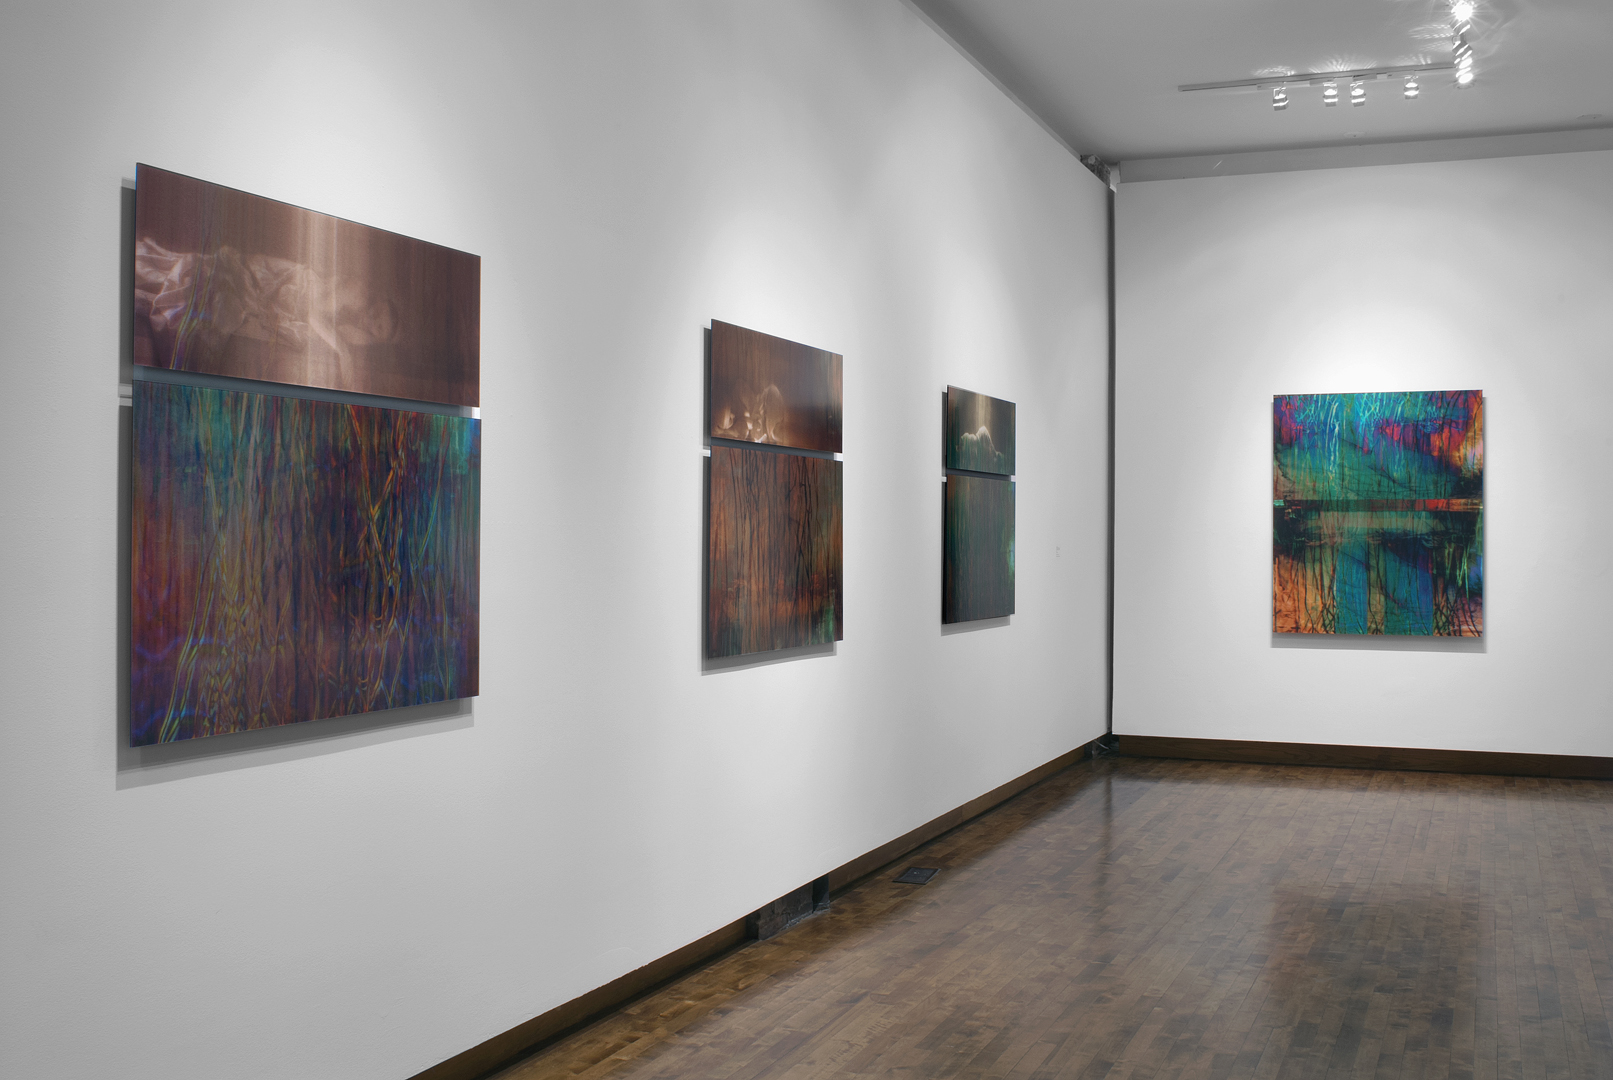 Installation View, Lonsdale Gallery 2016